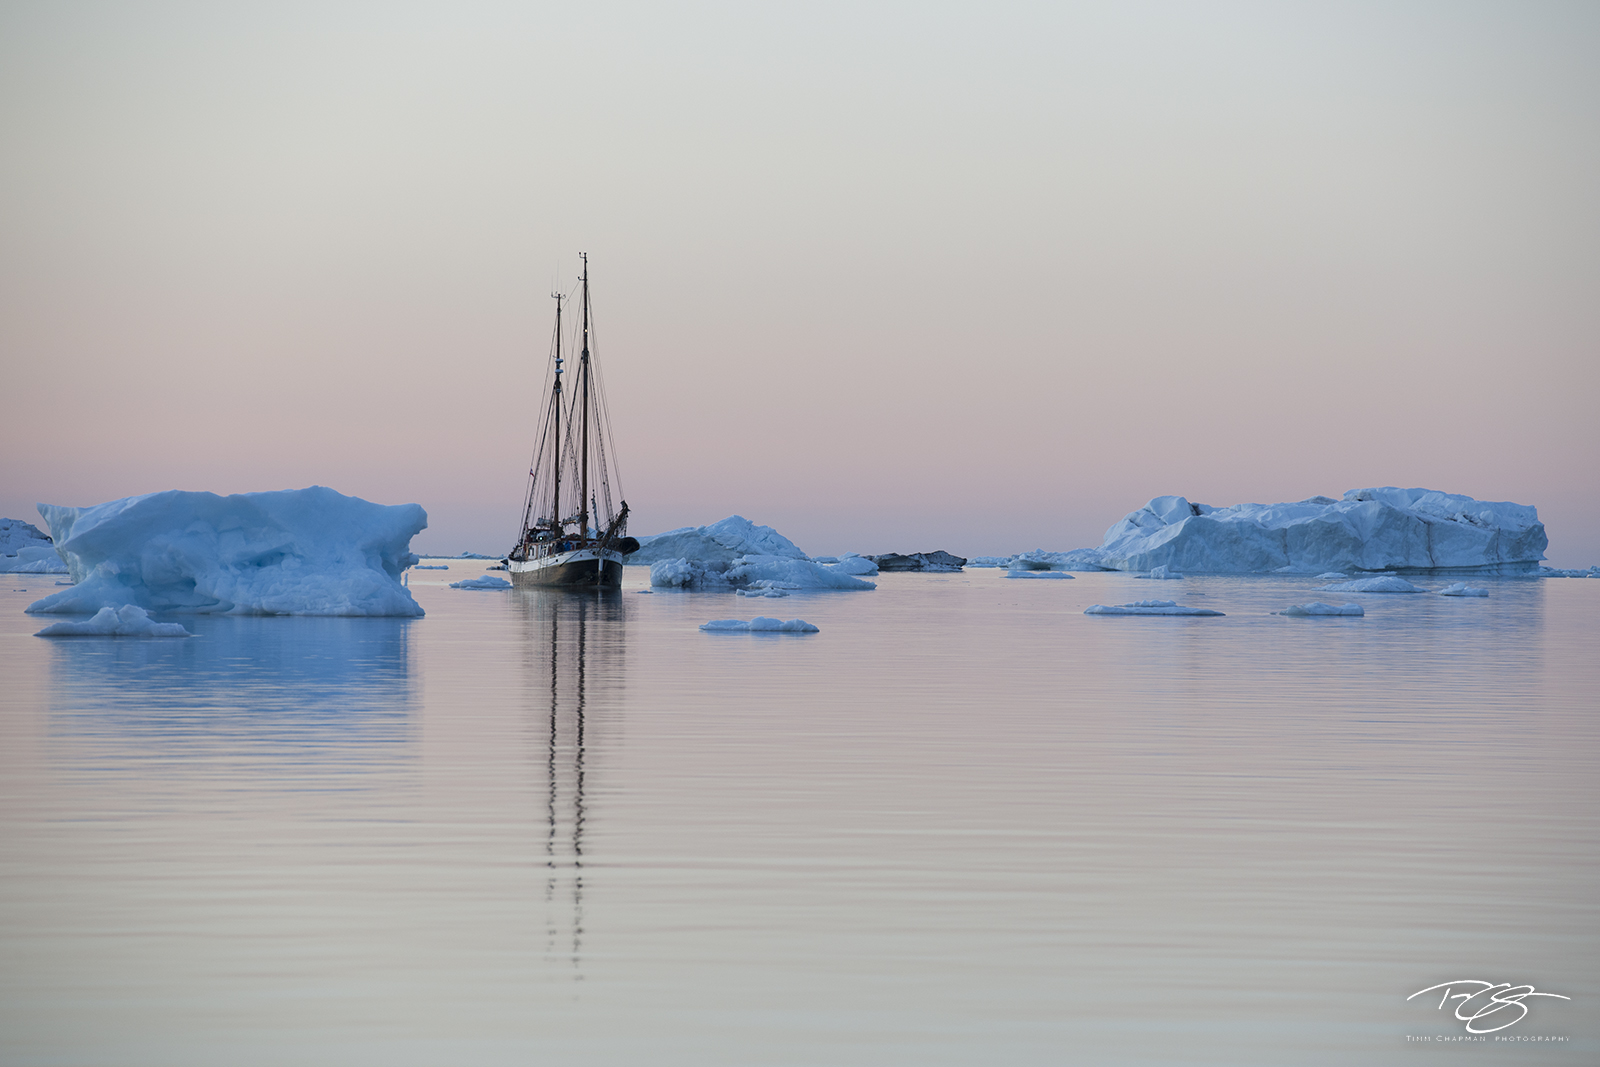 ice; iceberg, donna wood, sailboat, fishing vessel, ship, schooner, reflection, eventide, dusk, twilight, pastel sky, blue ice, calm, tranquil, peaceful, photo